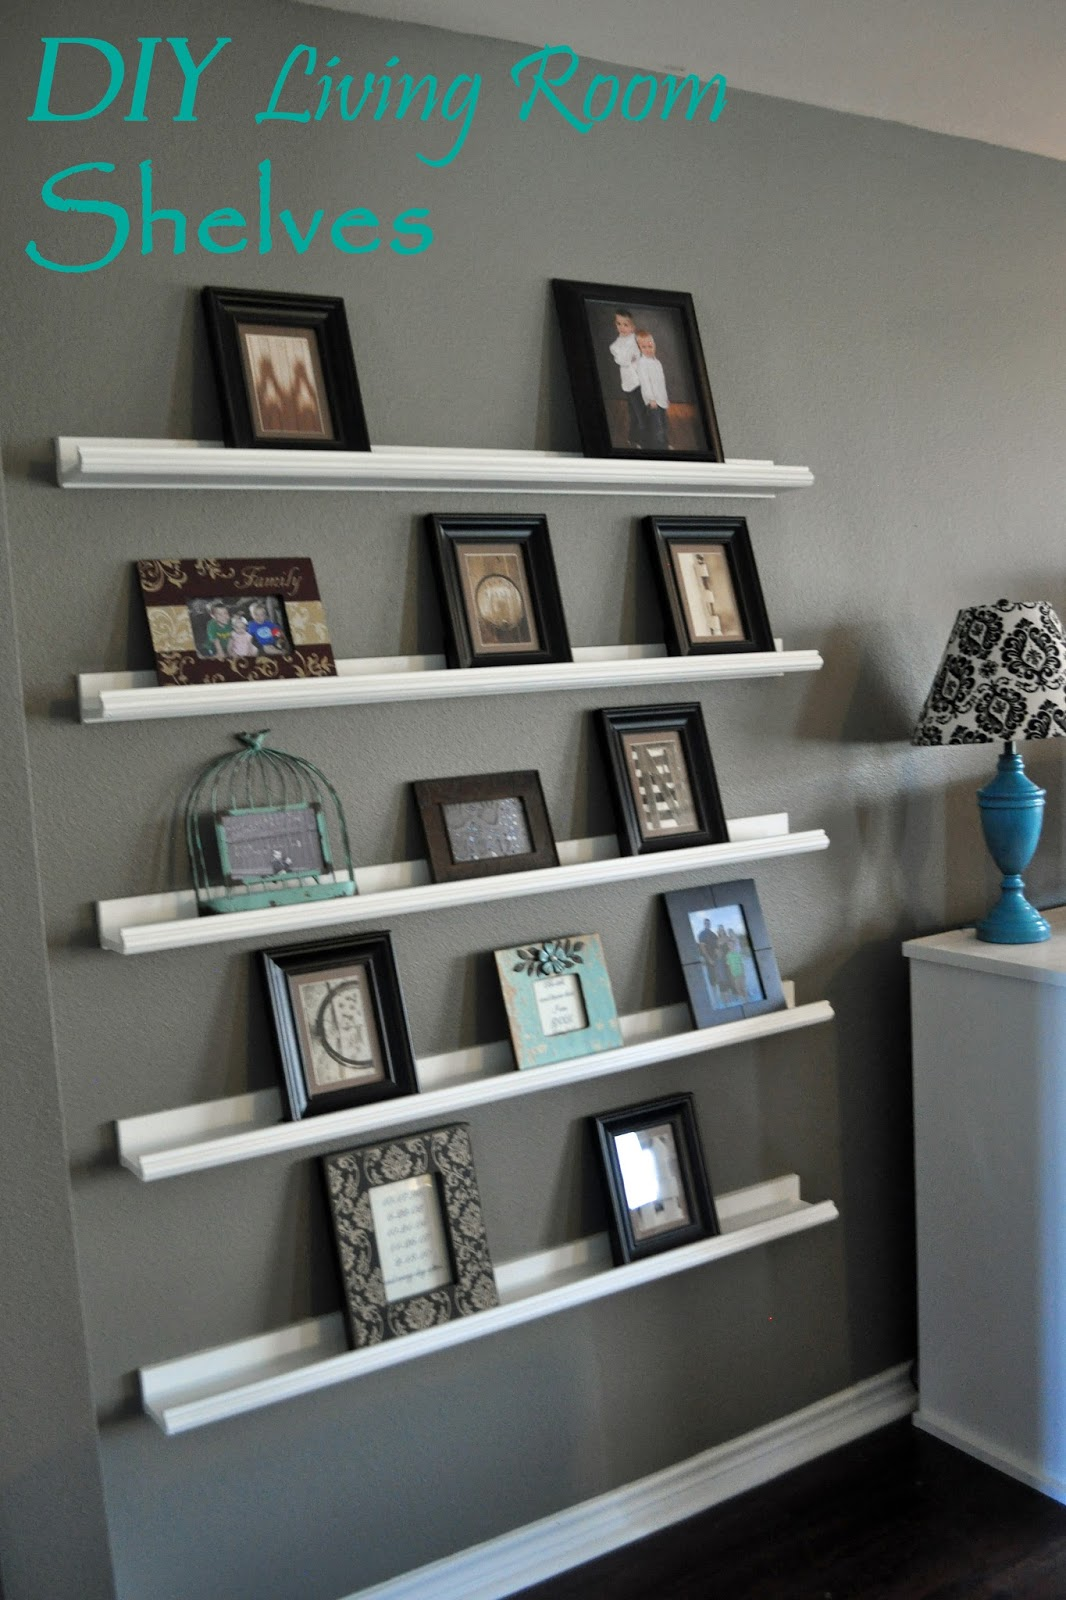 diy shelves in living room hotel ideas right where we are shelving for picture frames continuing our